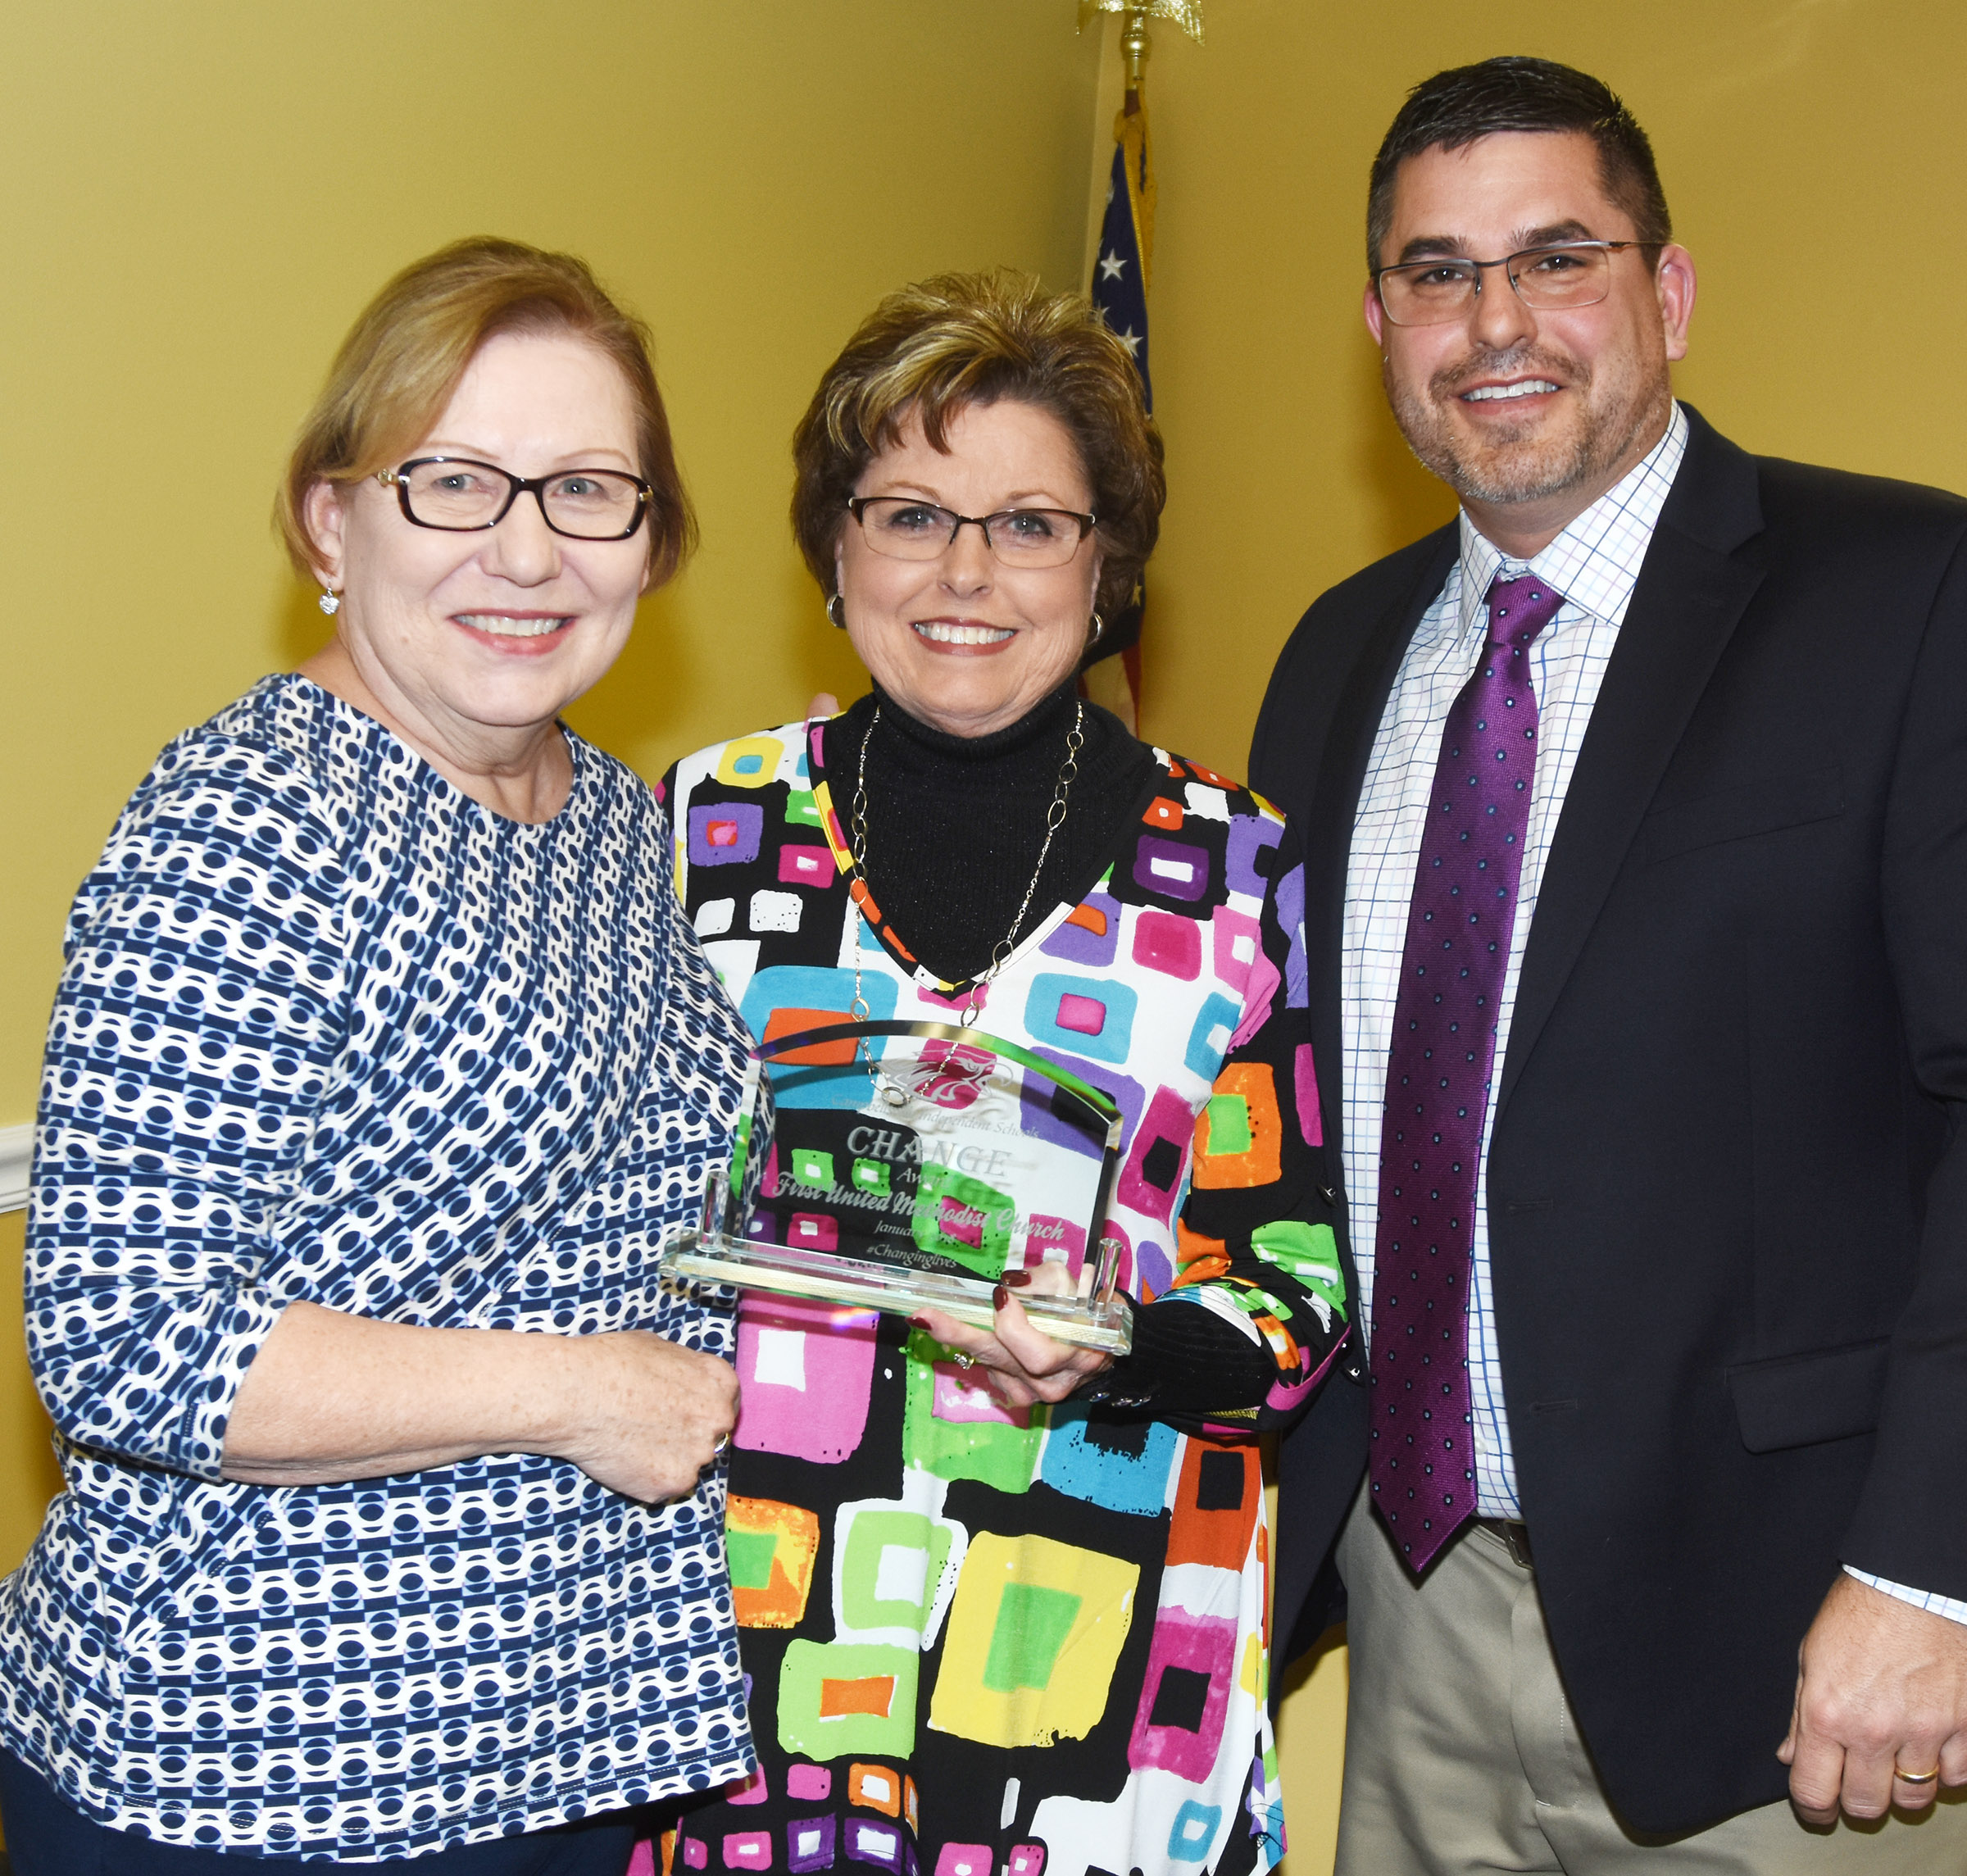 Campbellsville Independent Schools Superintendent Kirby Smith, at right, honors Linda Dernier, at left, and Lana Helm, who coordinate the Stars Child program at First United Methodist Church, with the community Change Award.